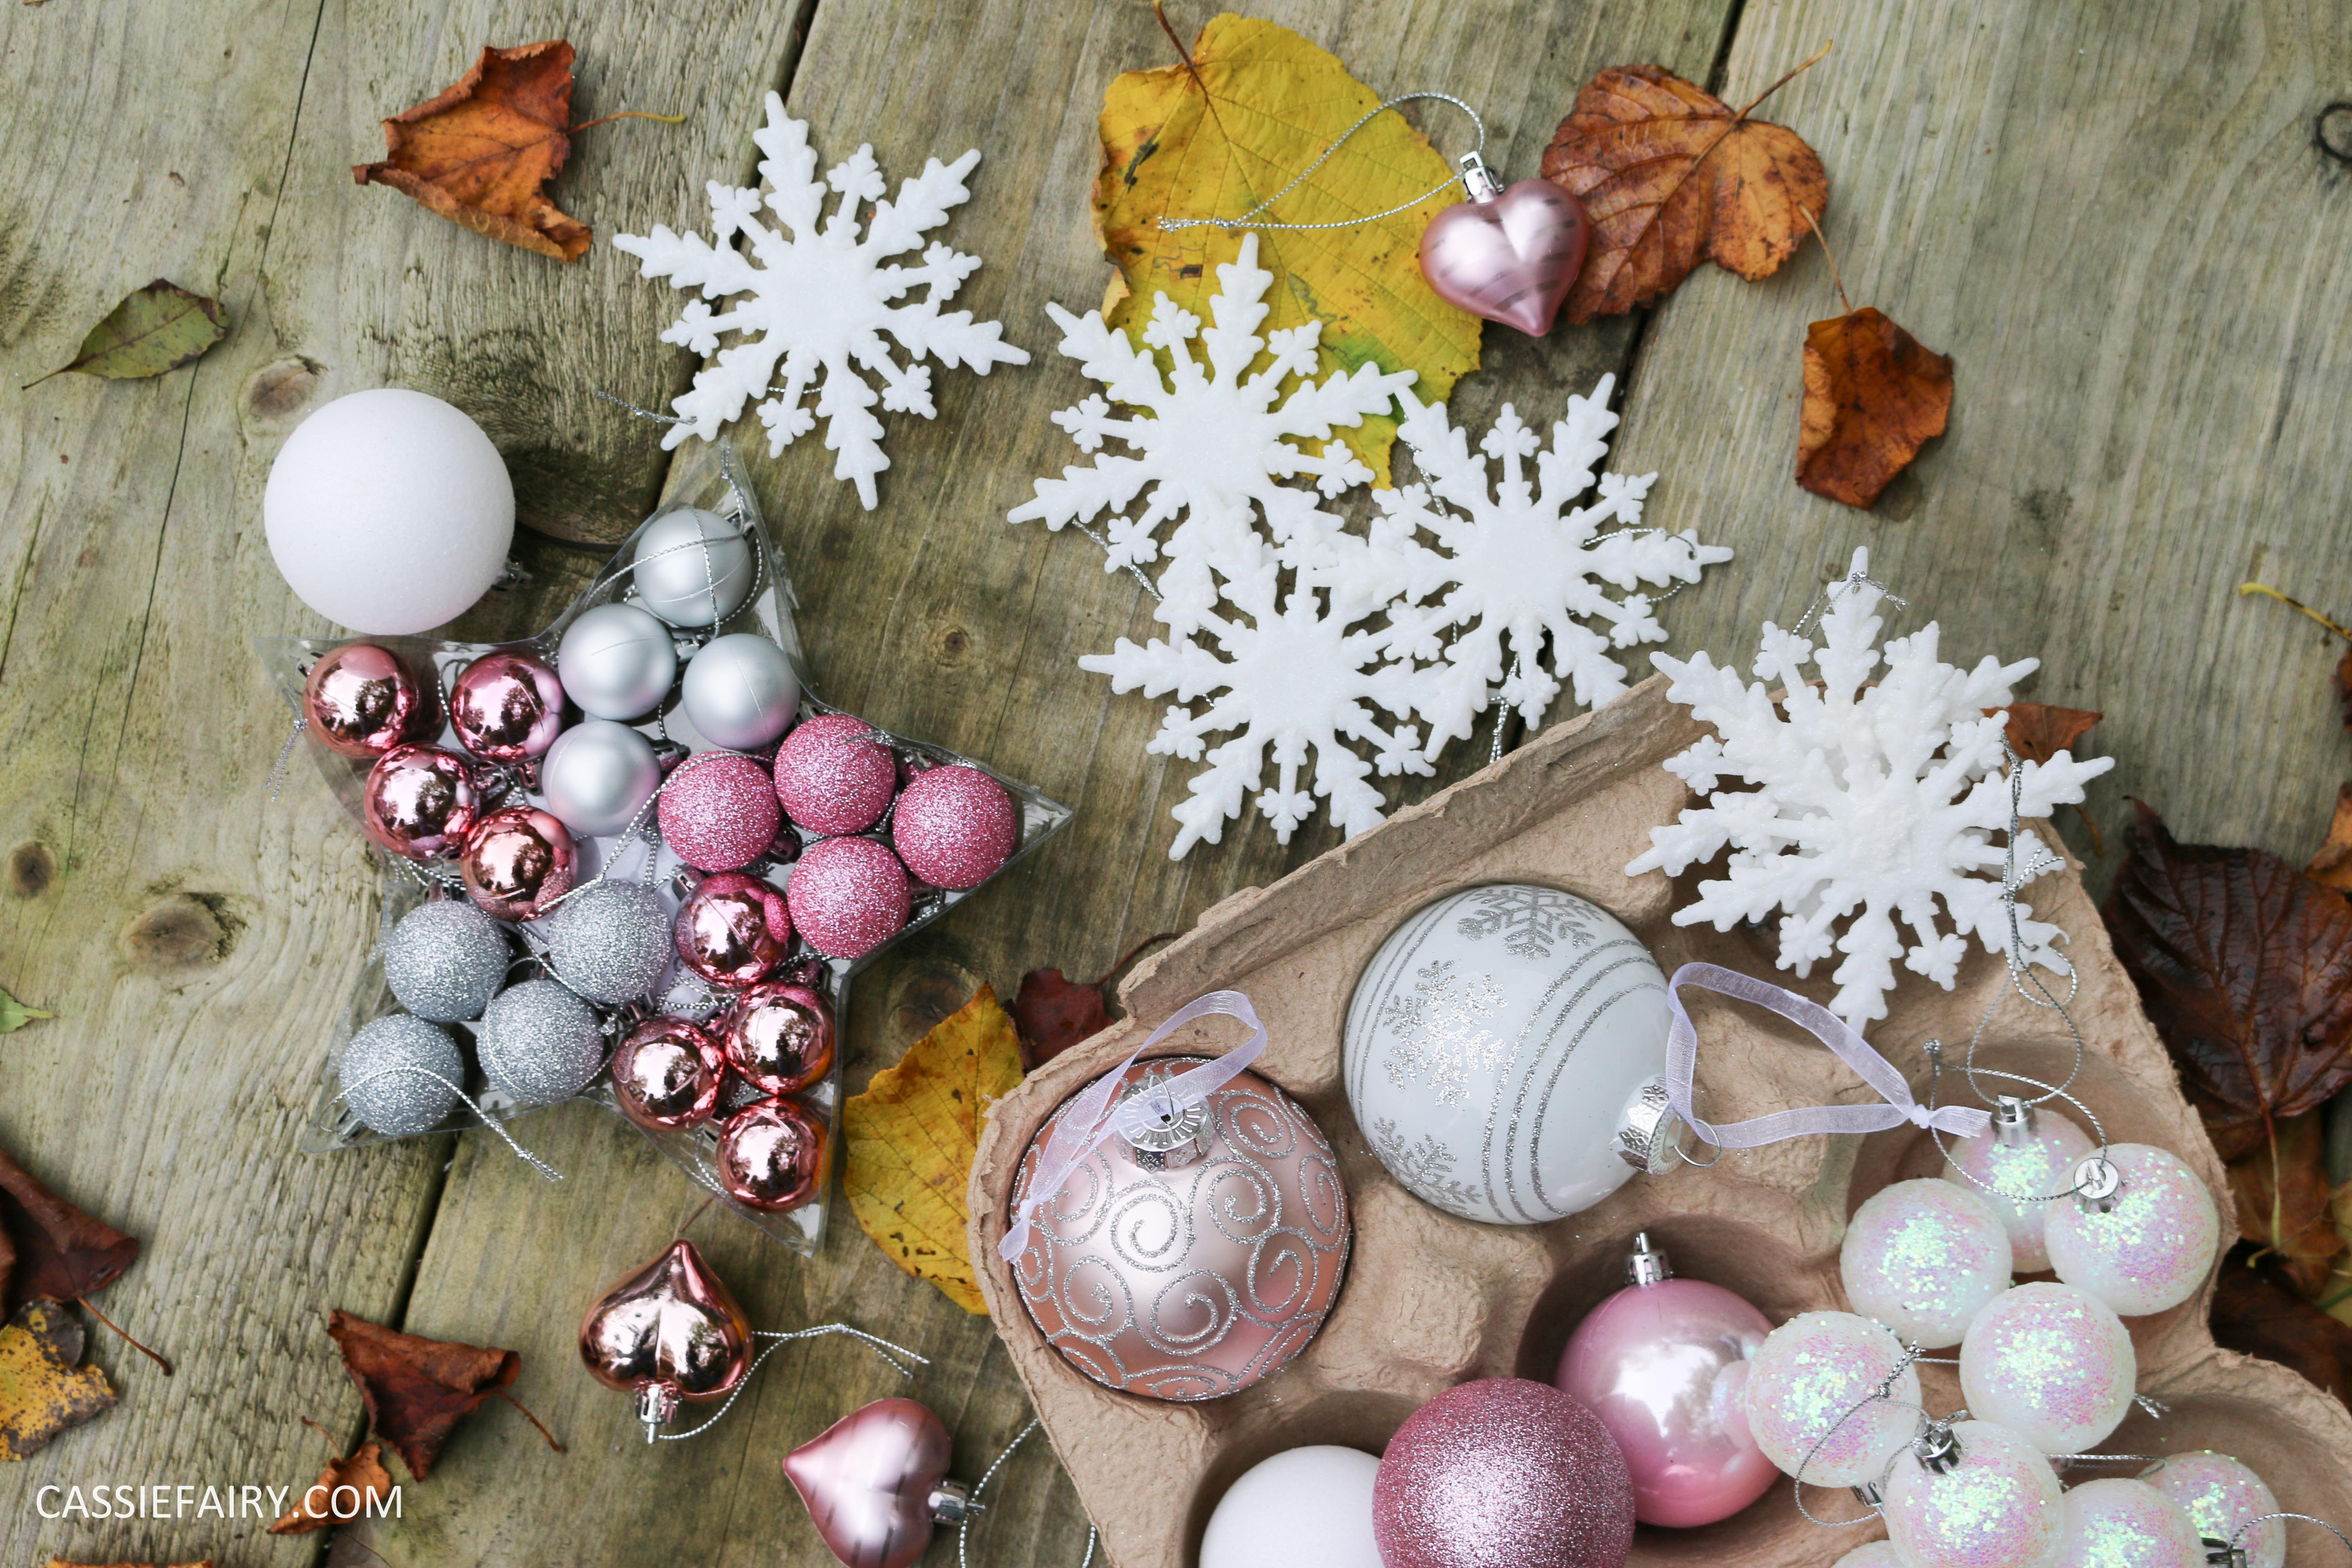 Christmas Decorations Theme my new christmas decorations theme – blush pink & oodles of glitter |